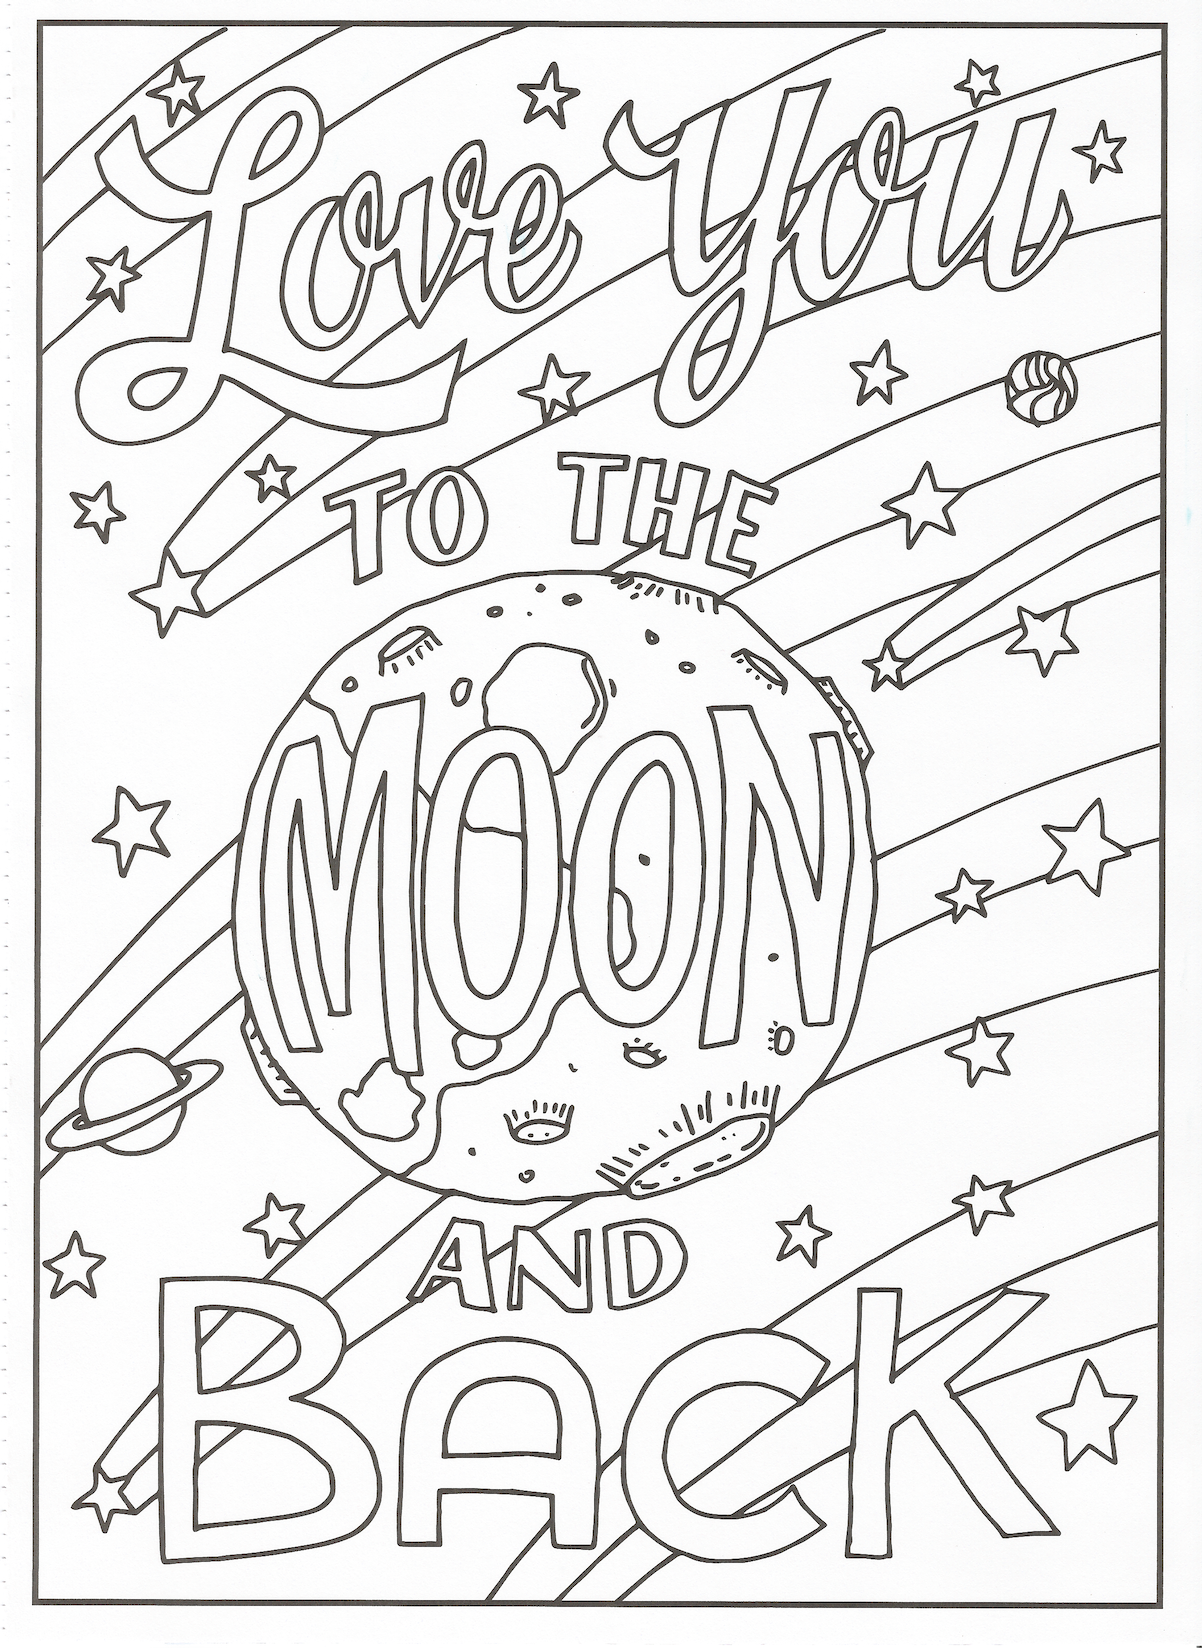 Timeless creations creative quotes coloring page love, coloring pages say i love you